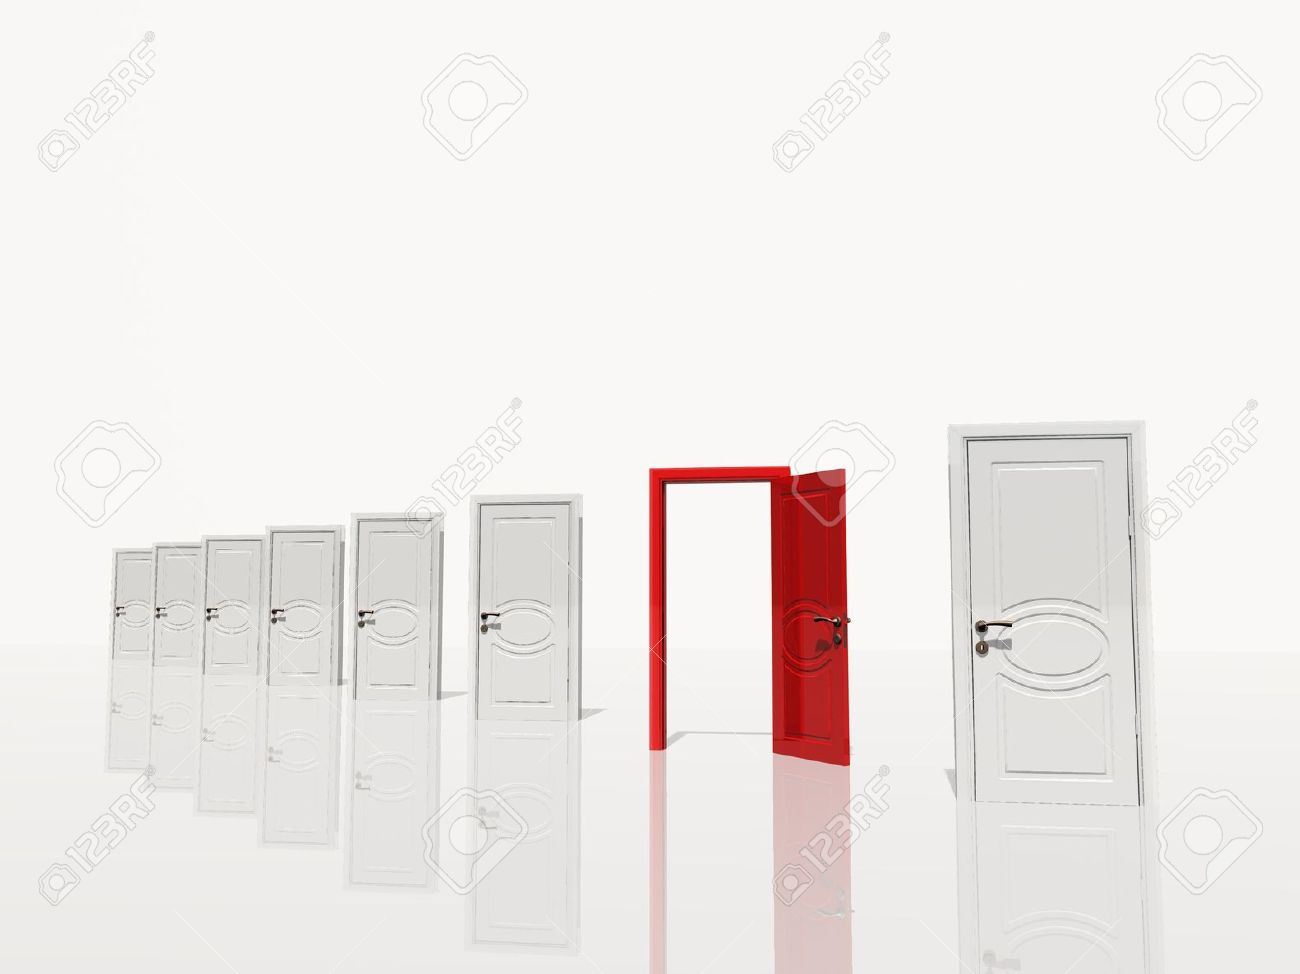 Sinigle open red door in of several white doors white space Stock Photo - 15488676